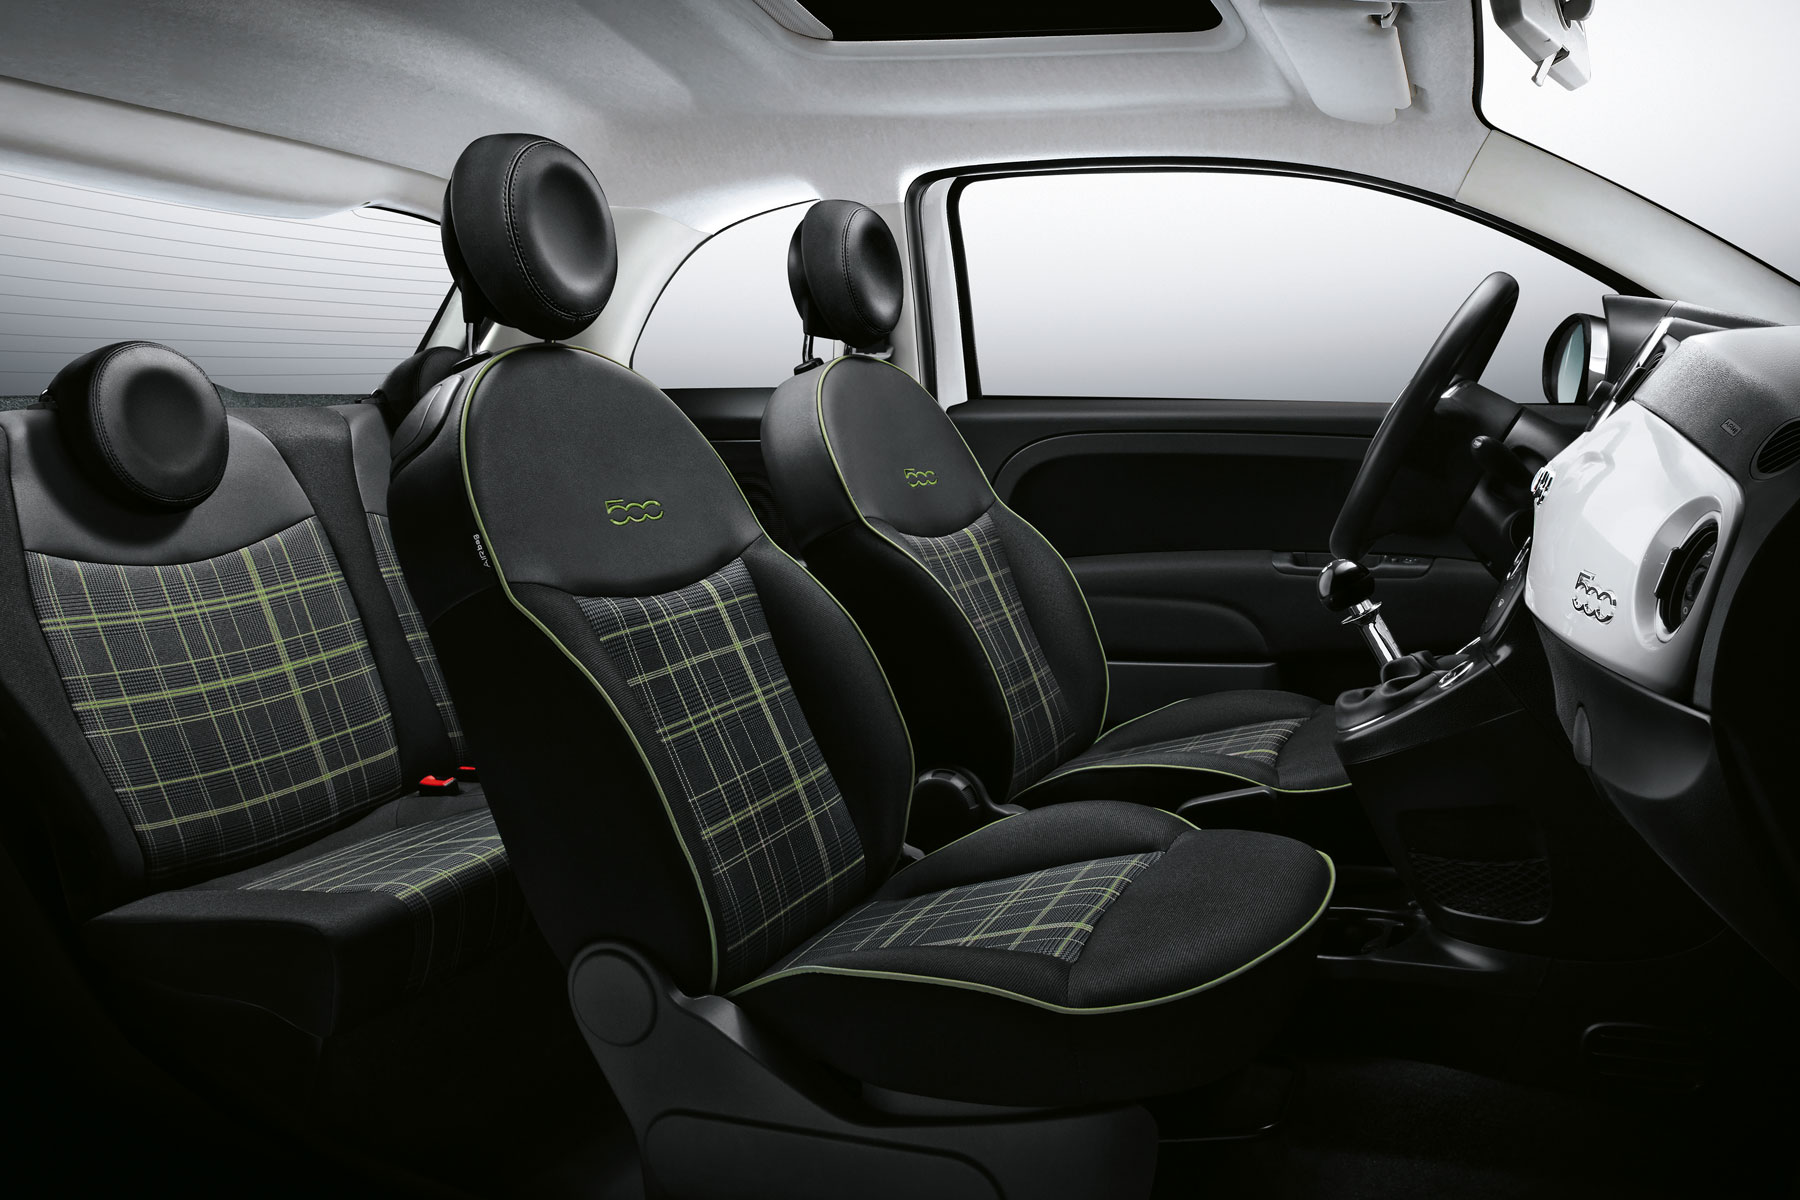 2015 Fiat 500: on the inside